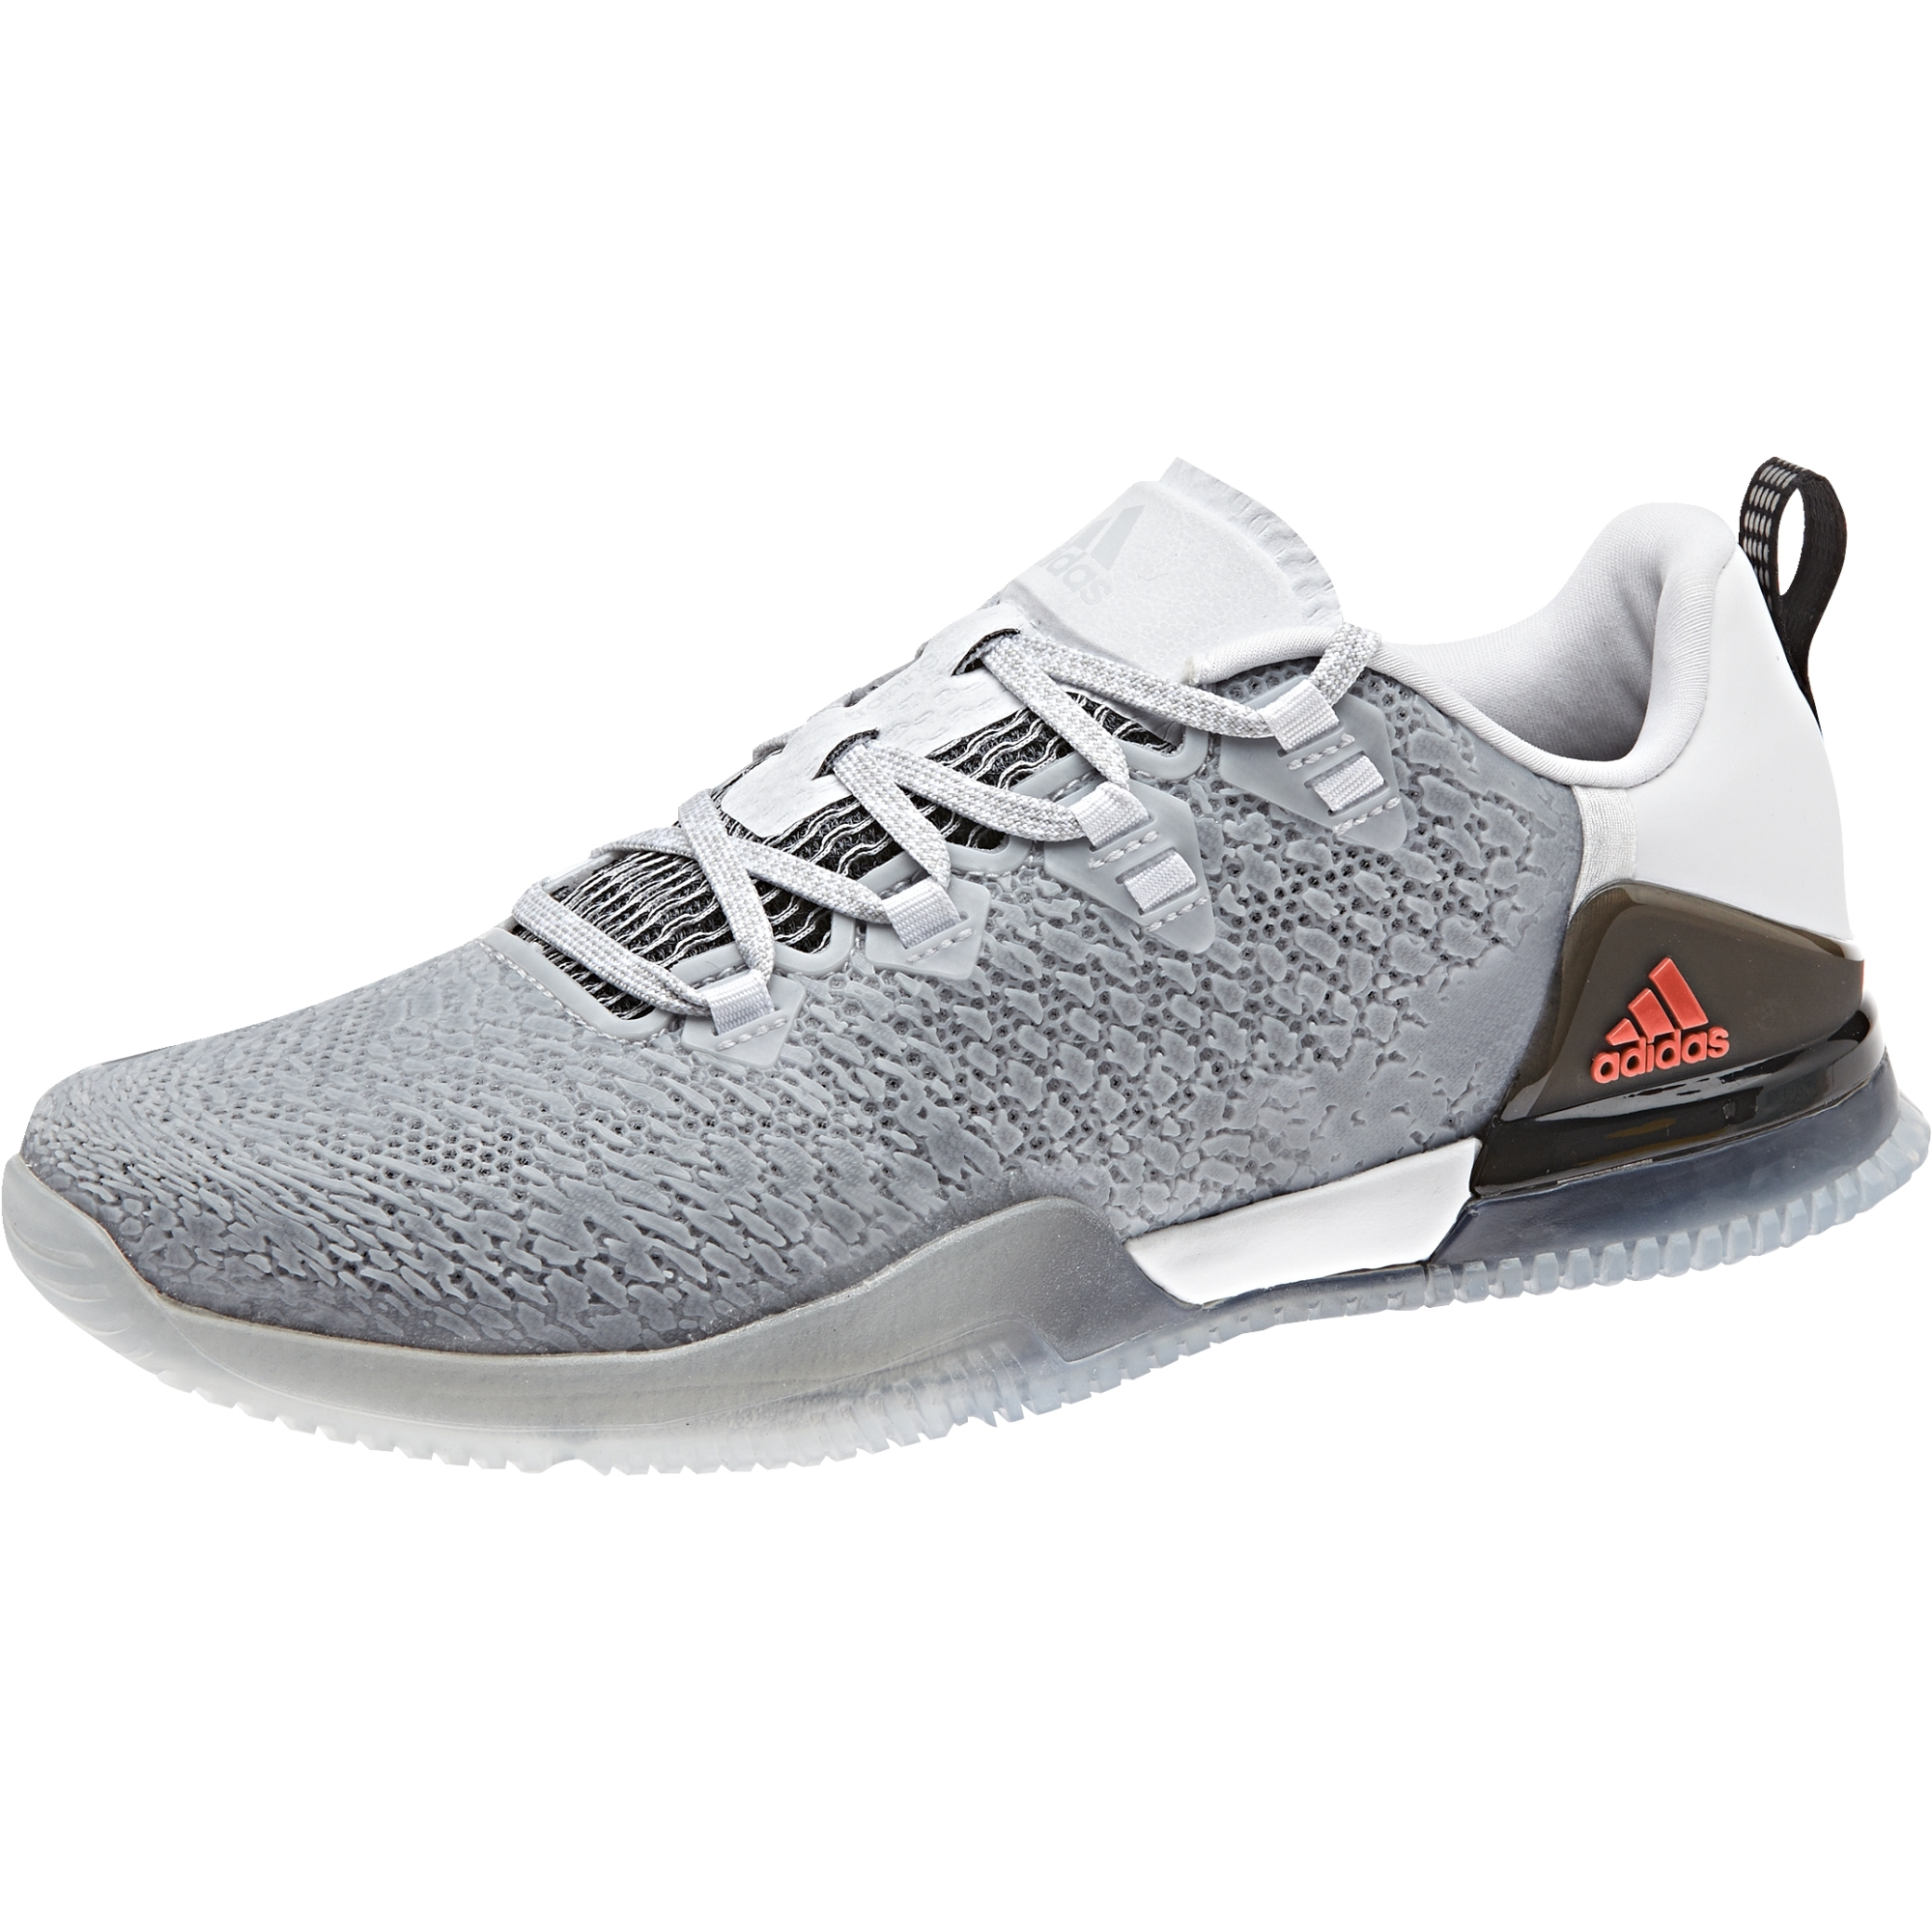 online store e2aa6 5b815 buty adidas CrazyPower Trainer BB1557 · buty adidas CrazyPower Trainer  BB1557 ...